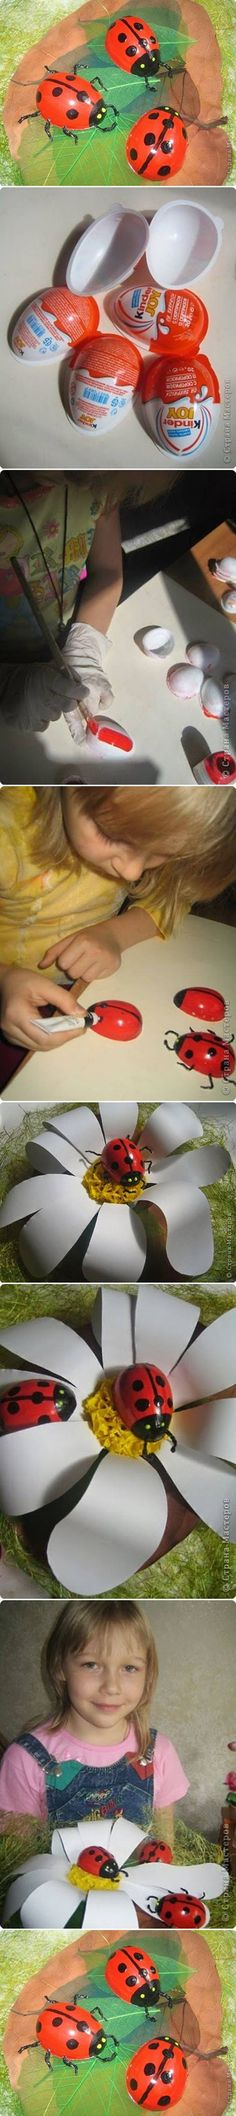 How to Make Painted Ladybug from Easter Egg by iris-flower Egg Crafts, Cute Crafts, Preschool Crafts, Easter Crafts, Diy And Crafts, Arts And Crafts, Easter Decor, Diy For Kids, Crafts For Kids